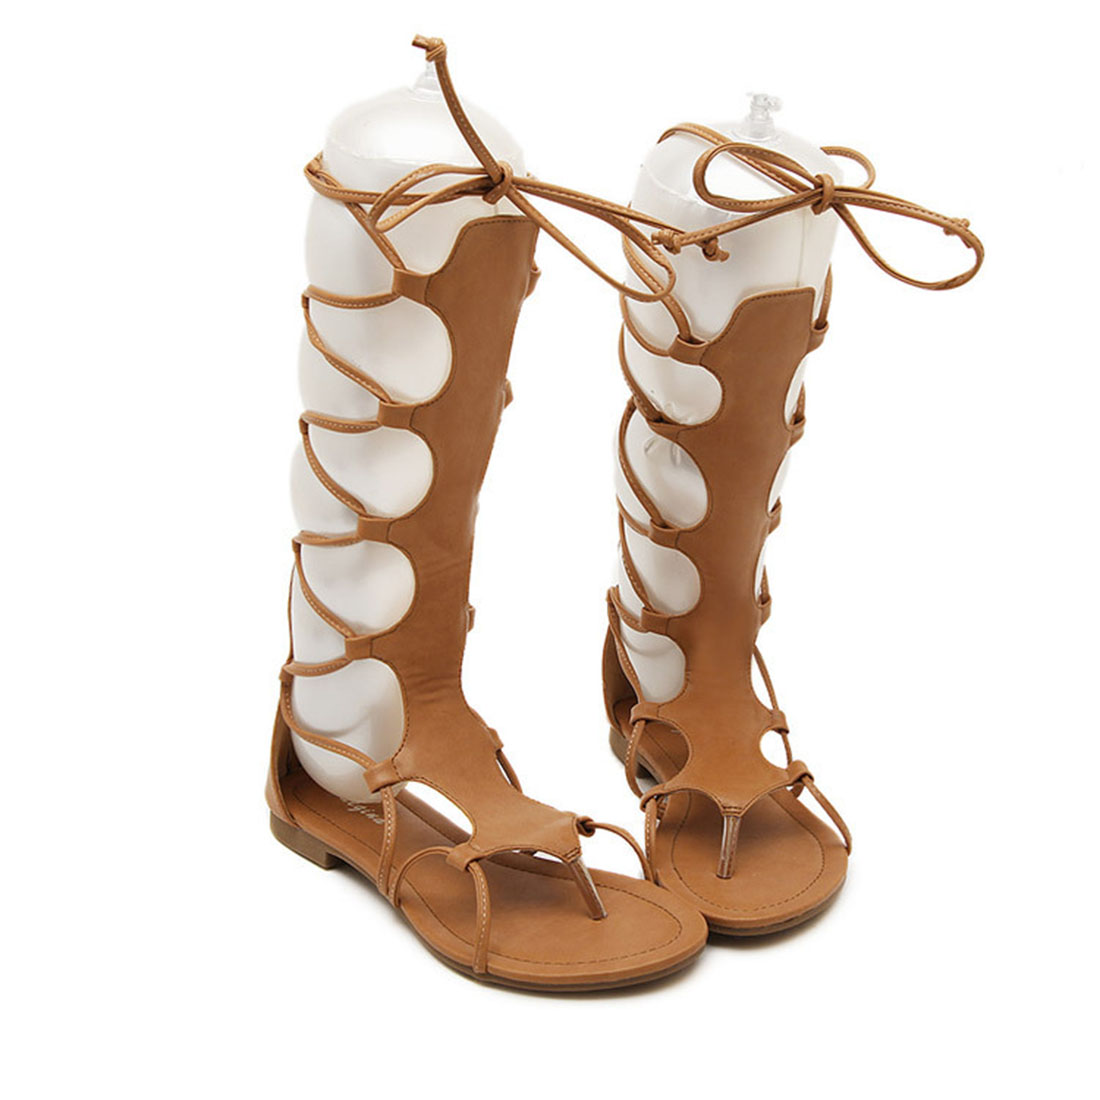 2017 Sexy Open Toe Lace Up Cut Out Gladiator Sandals black brown Flat Heel Knee High Sandal Summer shoes women flip flop sandals  2017 newest summer black brown leather sandal for woman sexy open toe flat crystal sandal sequins bead t strap buckle shoes